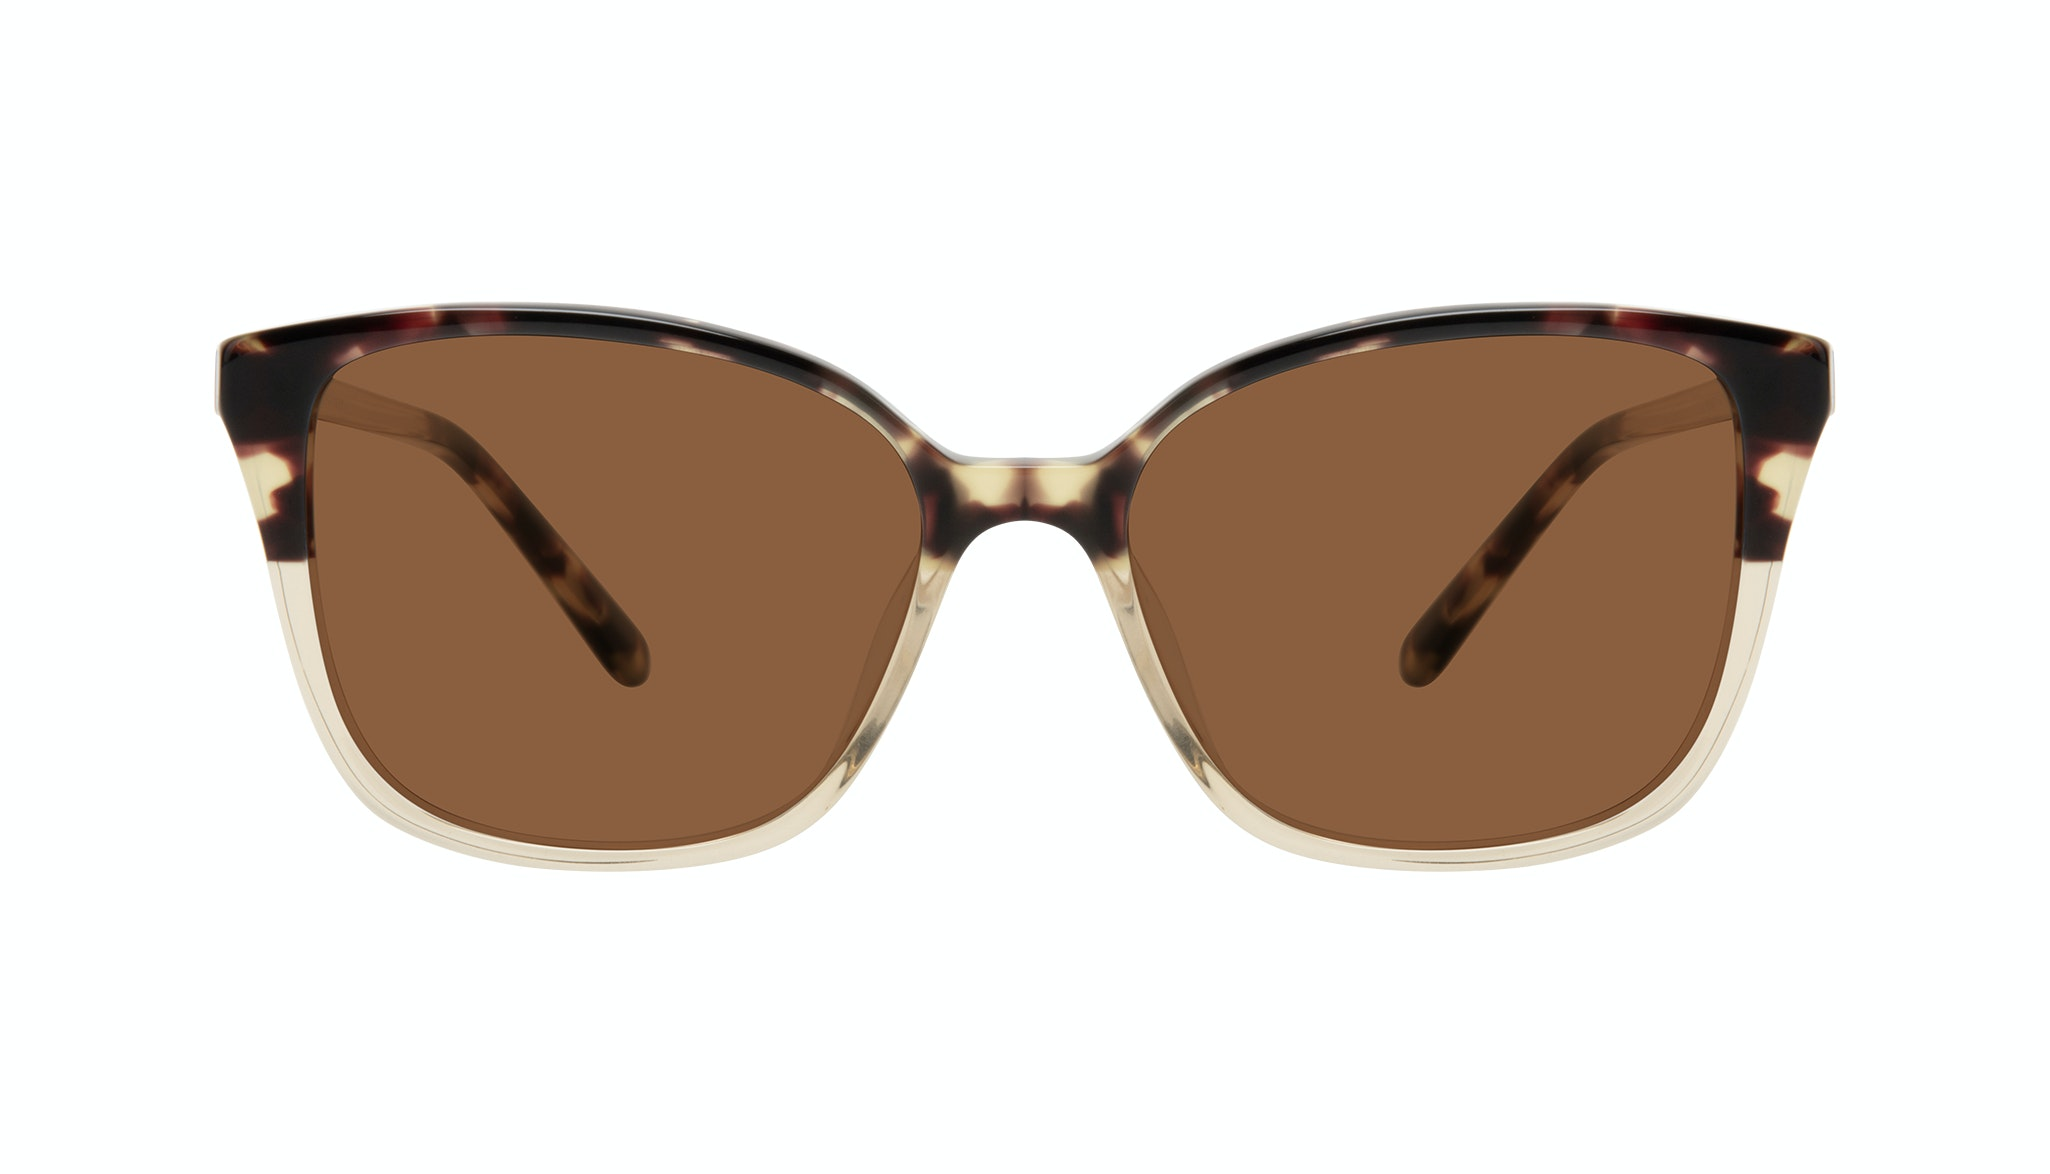 Affordable Fashion Glasses Square Sunglasses Women Only Golden Tort Front